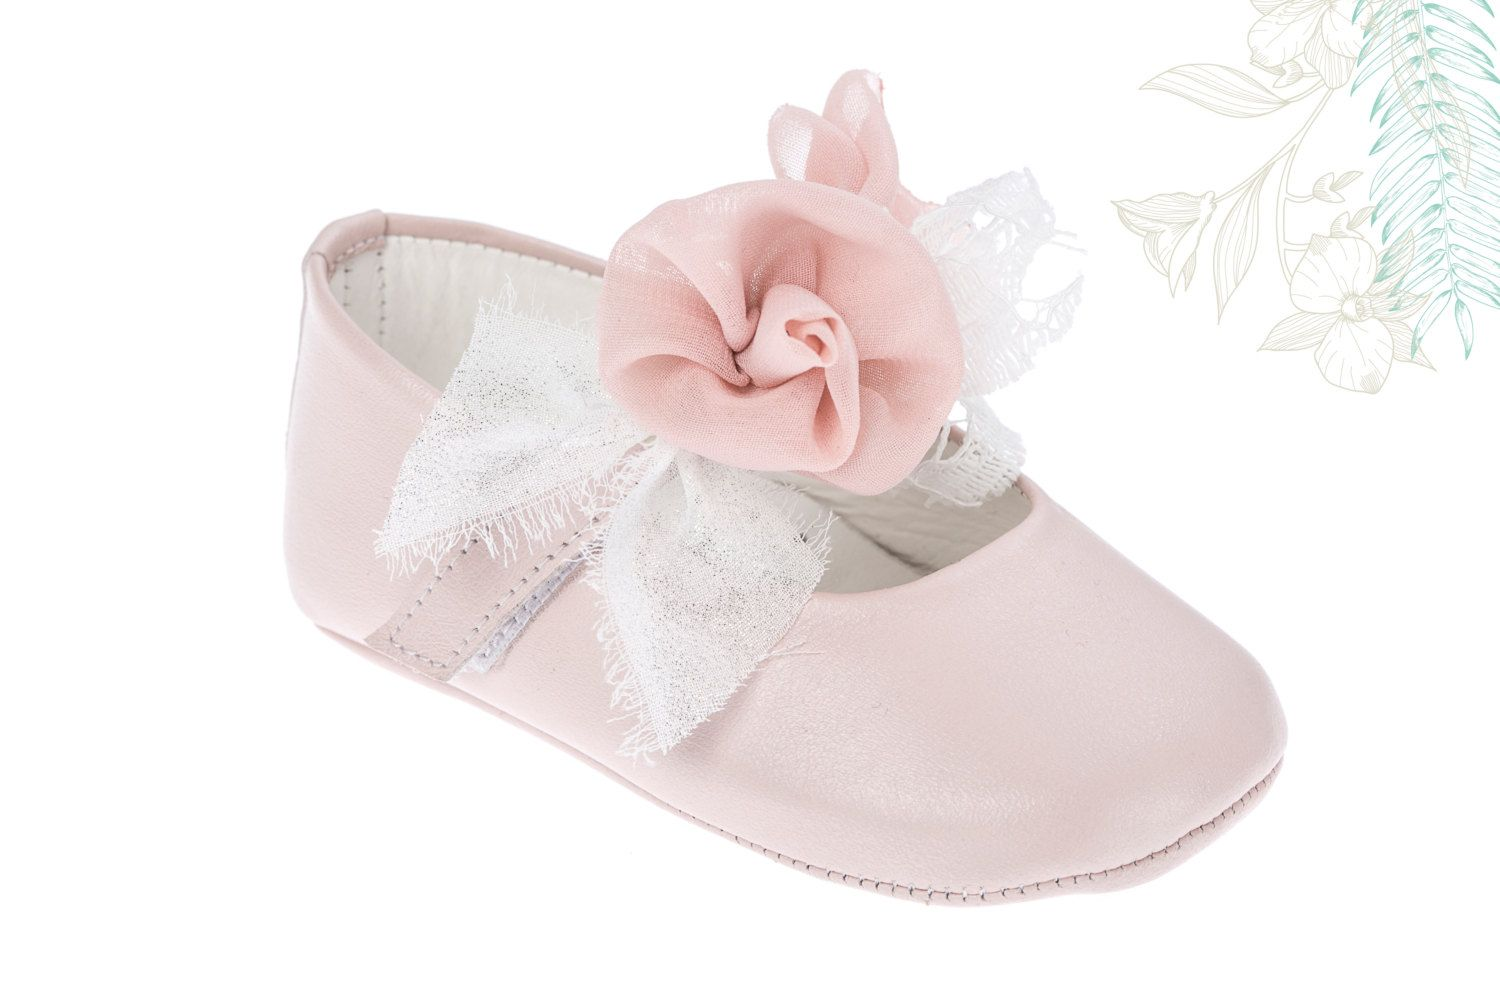 0b97ba42f Crib shoes Leather baby shoes Baby girl shoes Handmade shoes Baby ...